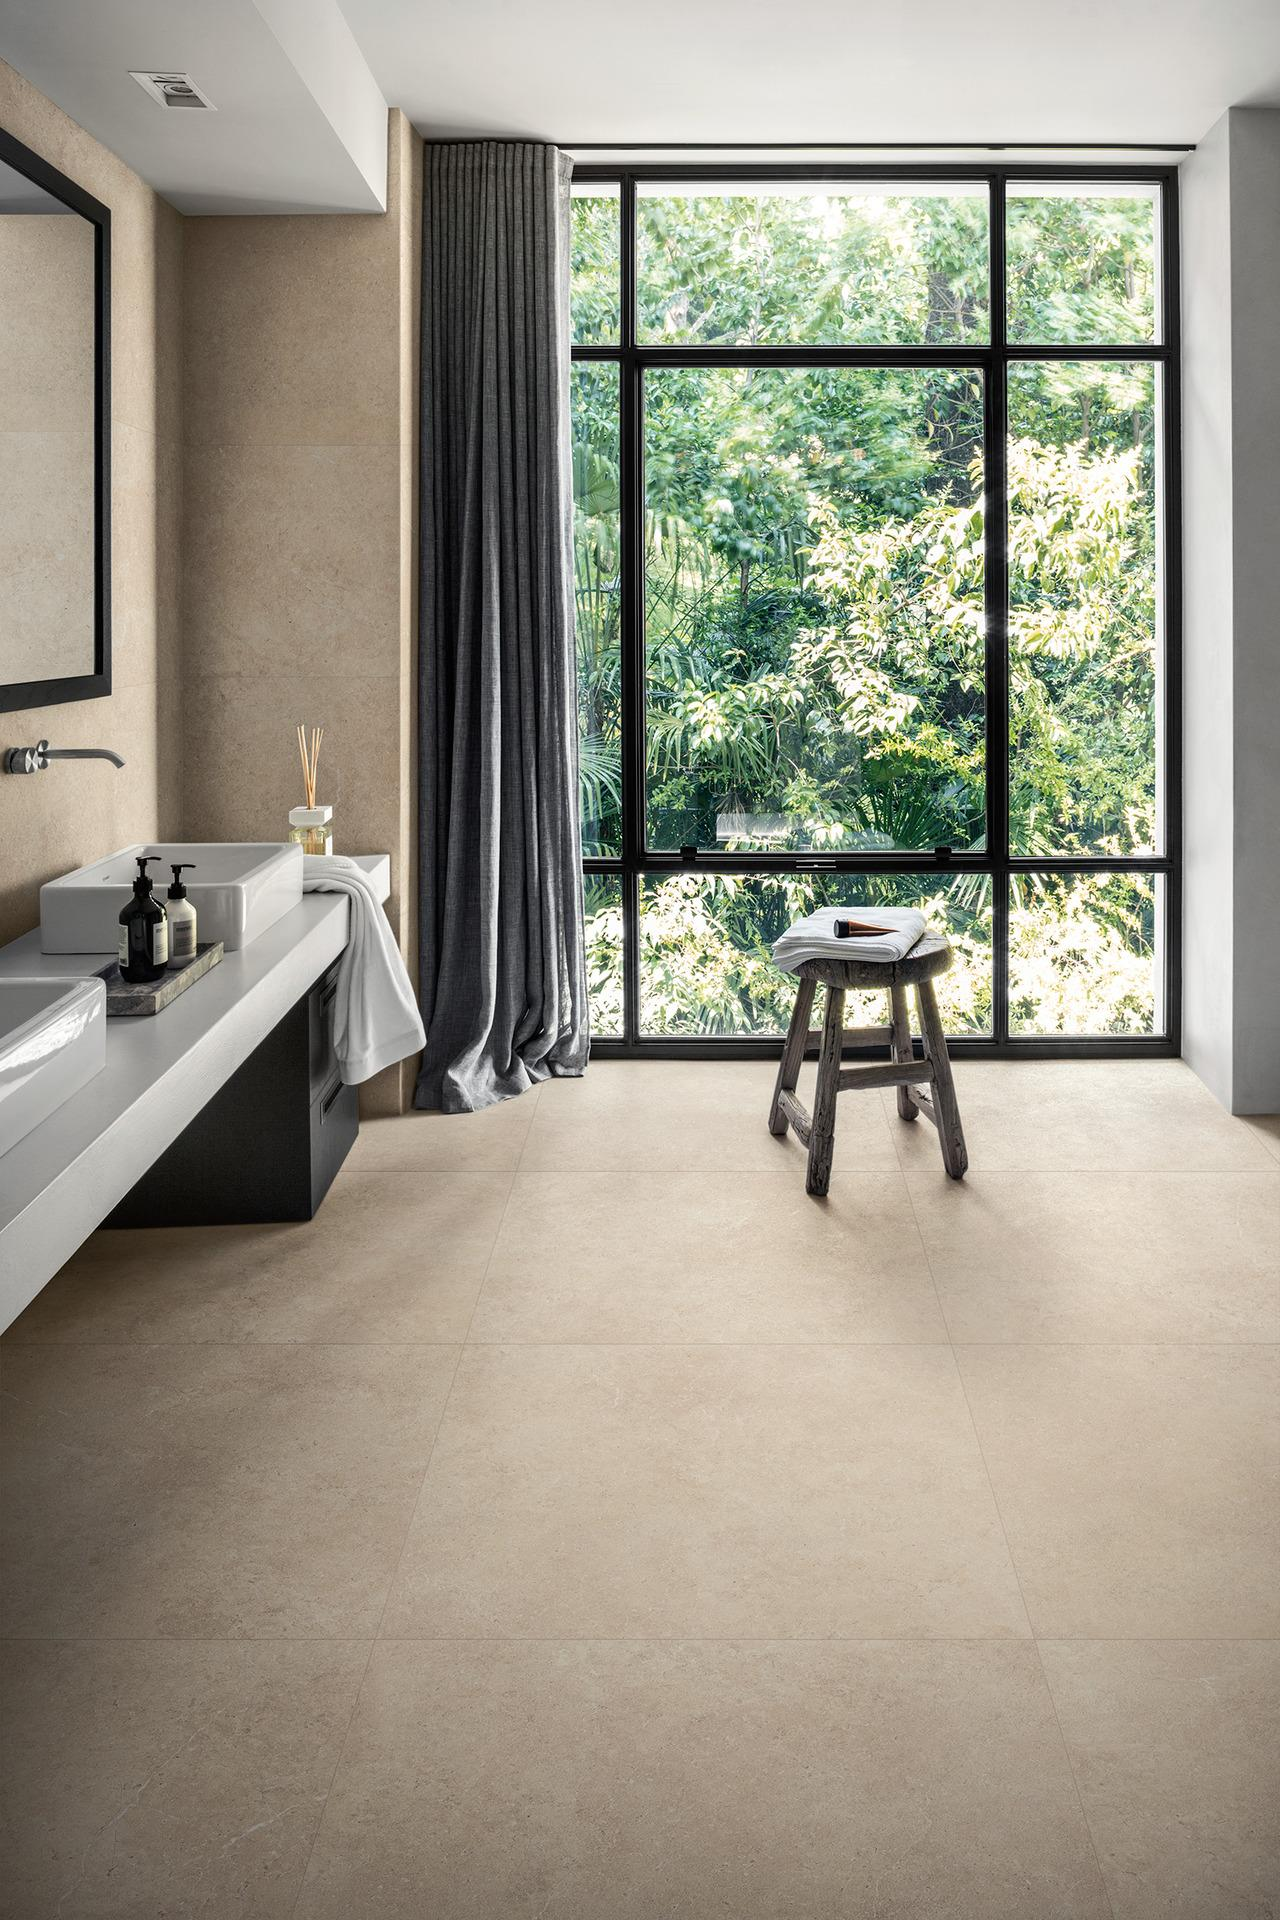 Mystone limestone - Stone Effect - Bathroom